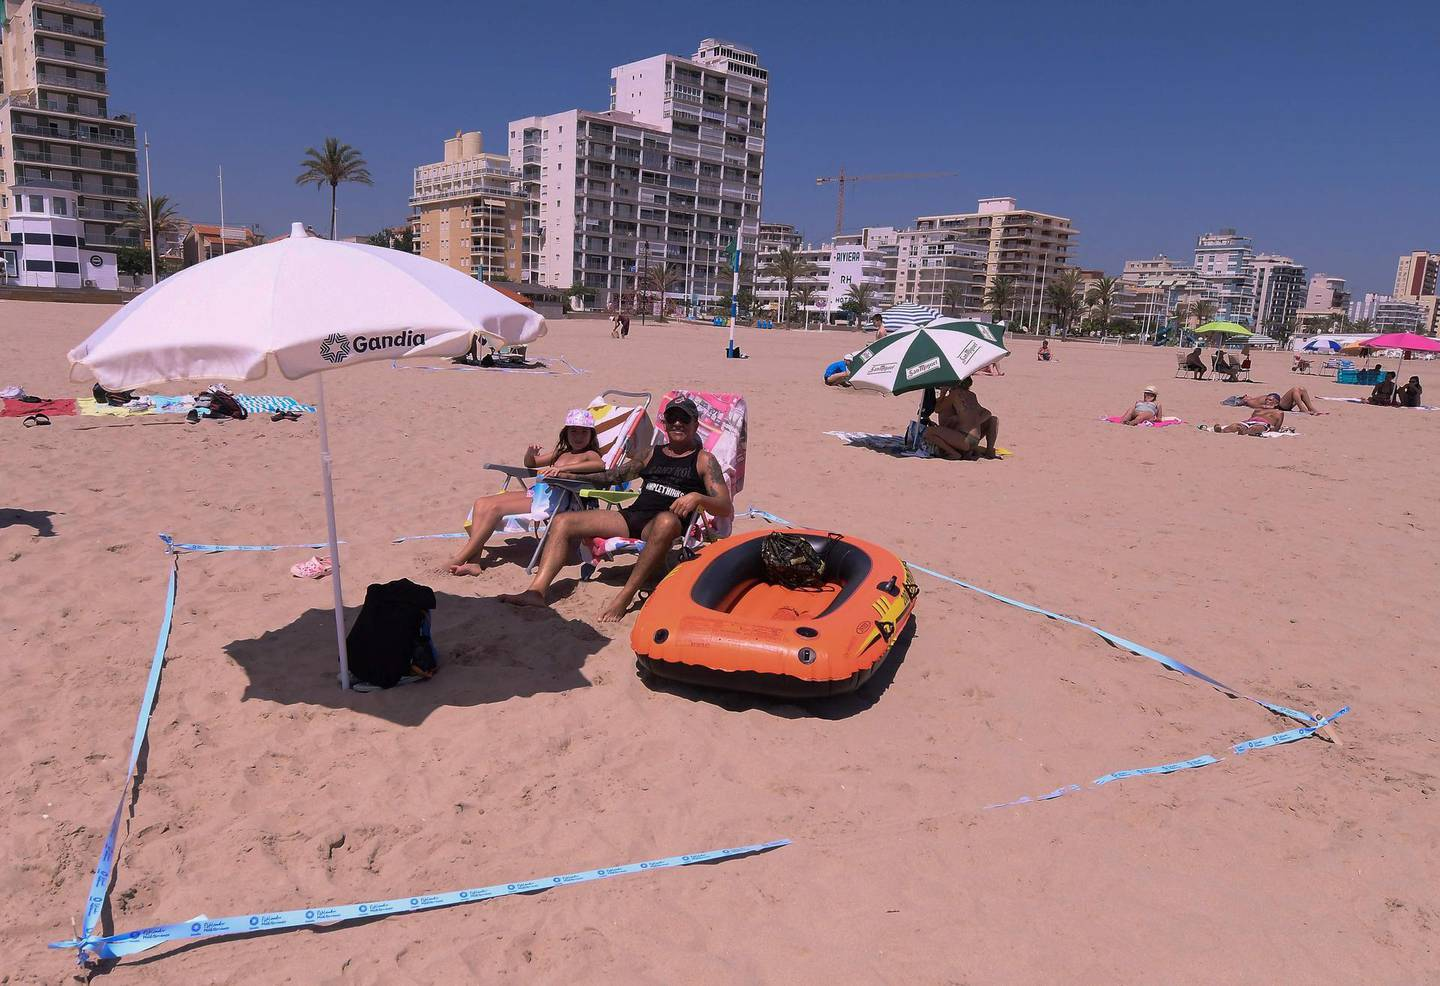 (FILES) In this file photo taken on July 01, 2020 People use a barrier tape to set a secure social distance space at the Nord Beach in Gandia, near Valencia on July 1, 2020. Spain will allow all vaccinated travellers to visit the country from June 7, Prime Minister Pedro Sanchez said on May 21, 2021, as the tourism hotspot aims to revive its virus-battered travel industry. / AFP / JOSE JORDAN